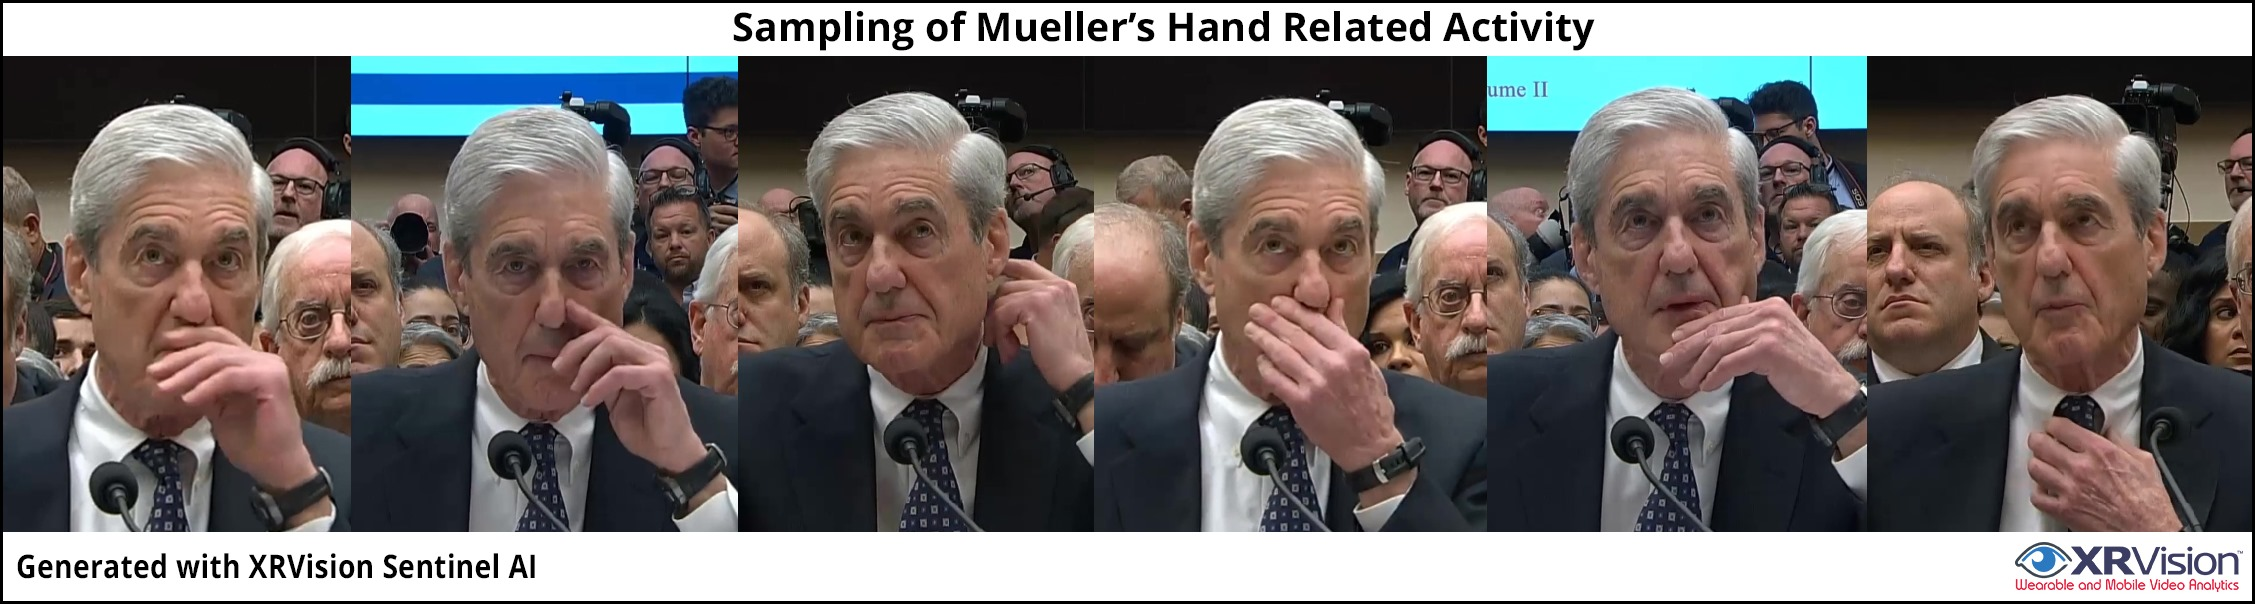 Sampling of Mueller's Body Mechanics